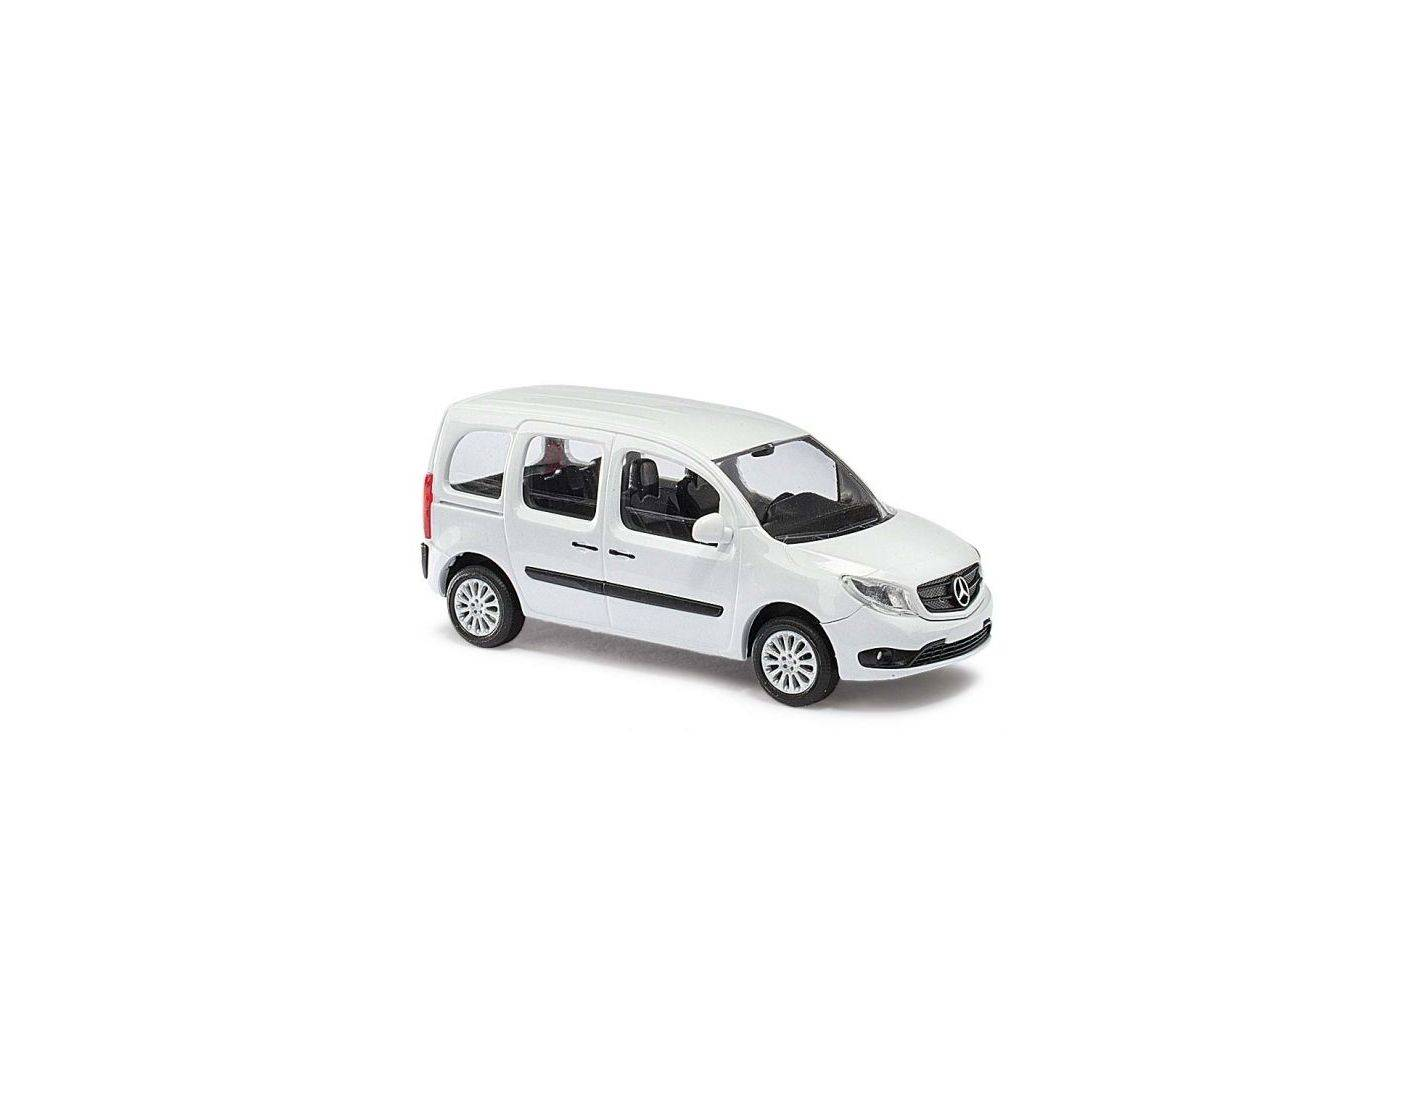 busch 50651 mercedes citan kombi white modellino die cast models. Black Bedroom Furniture Sets. Home Design Ideas